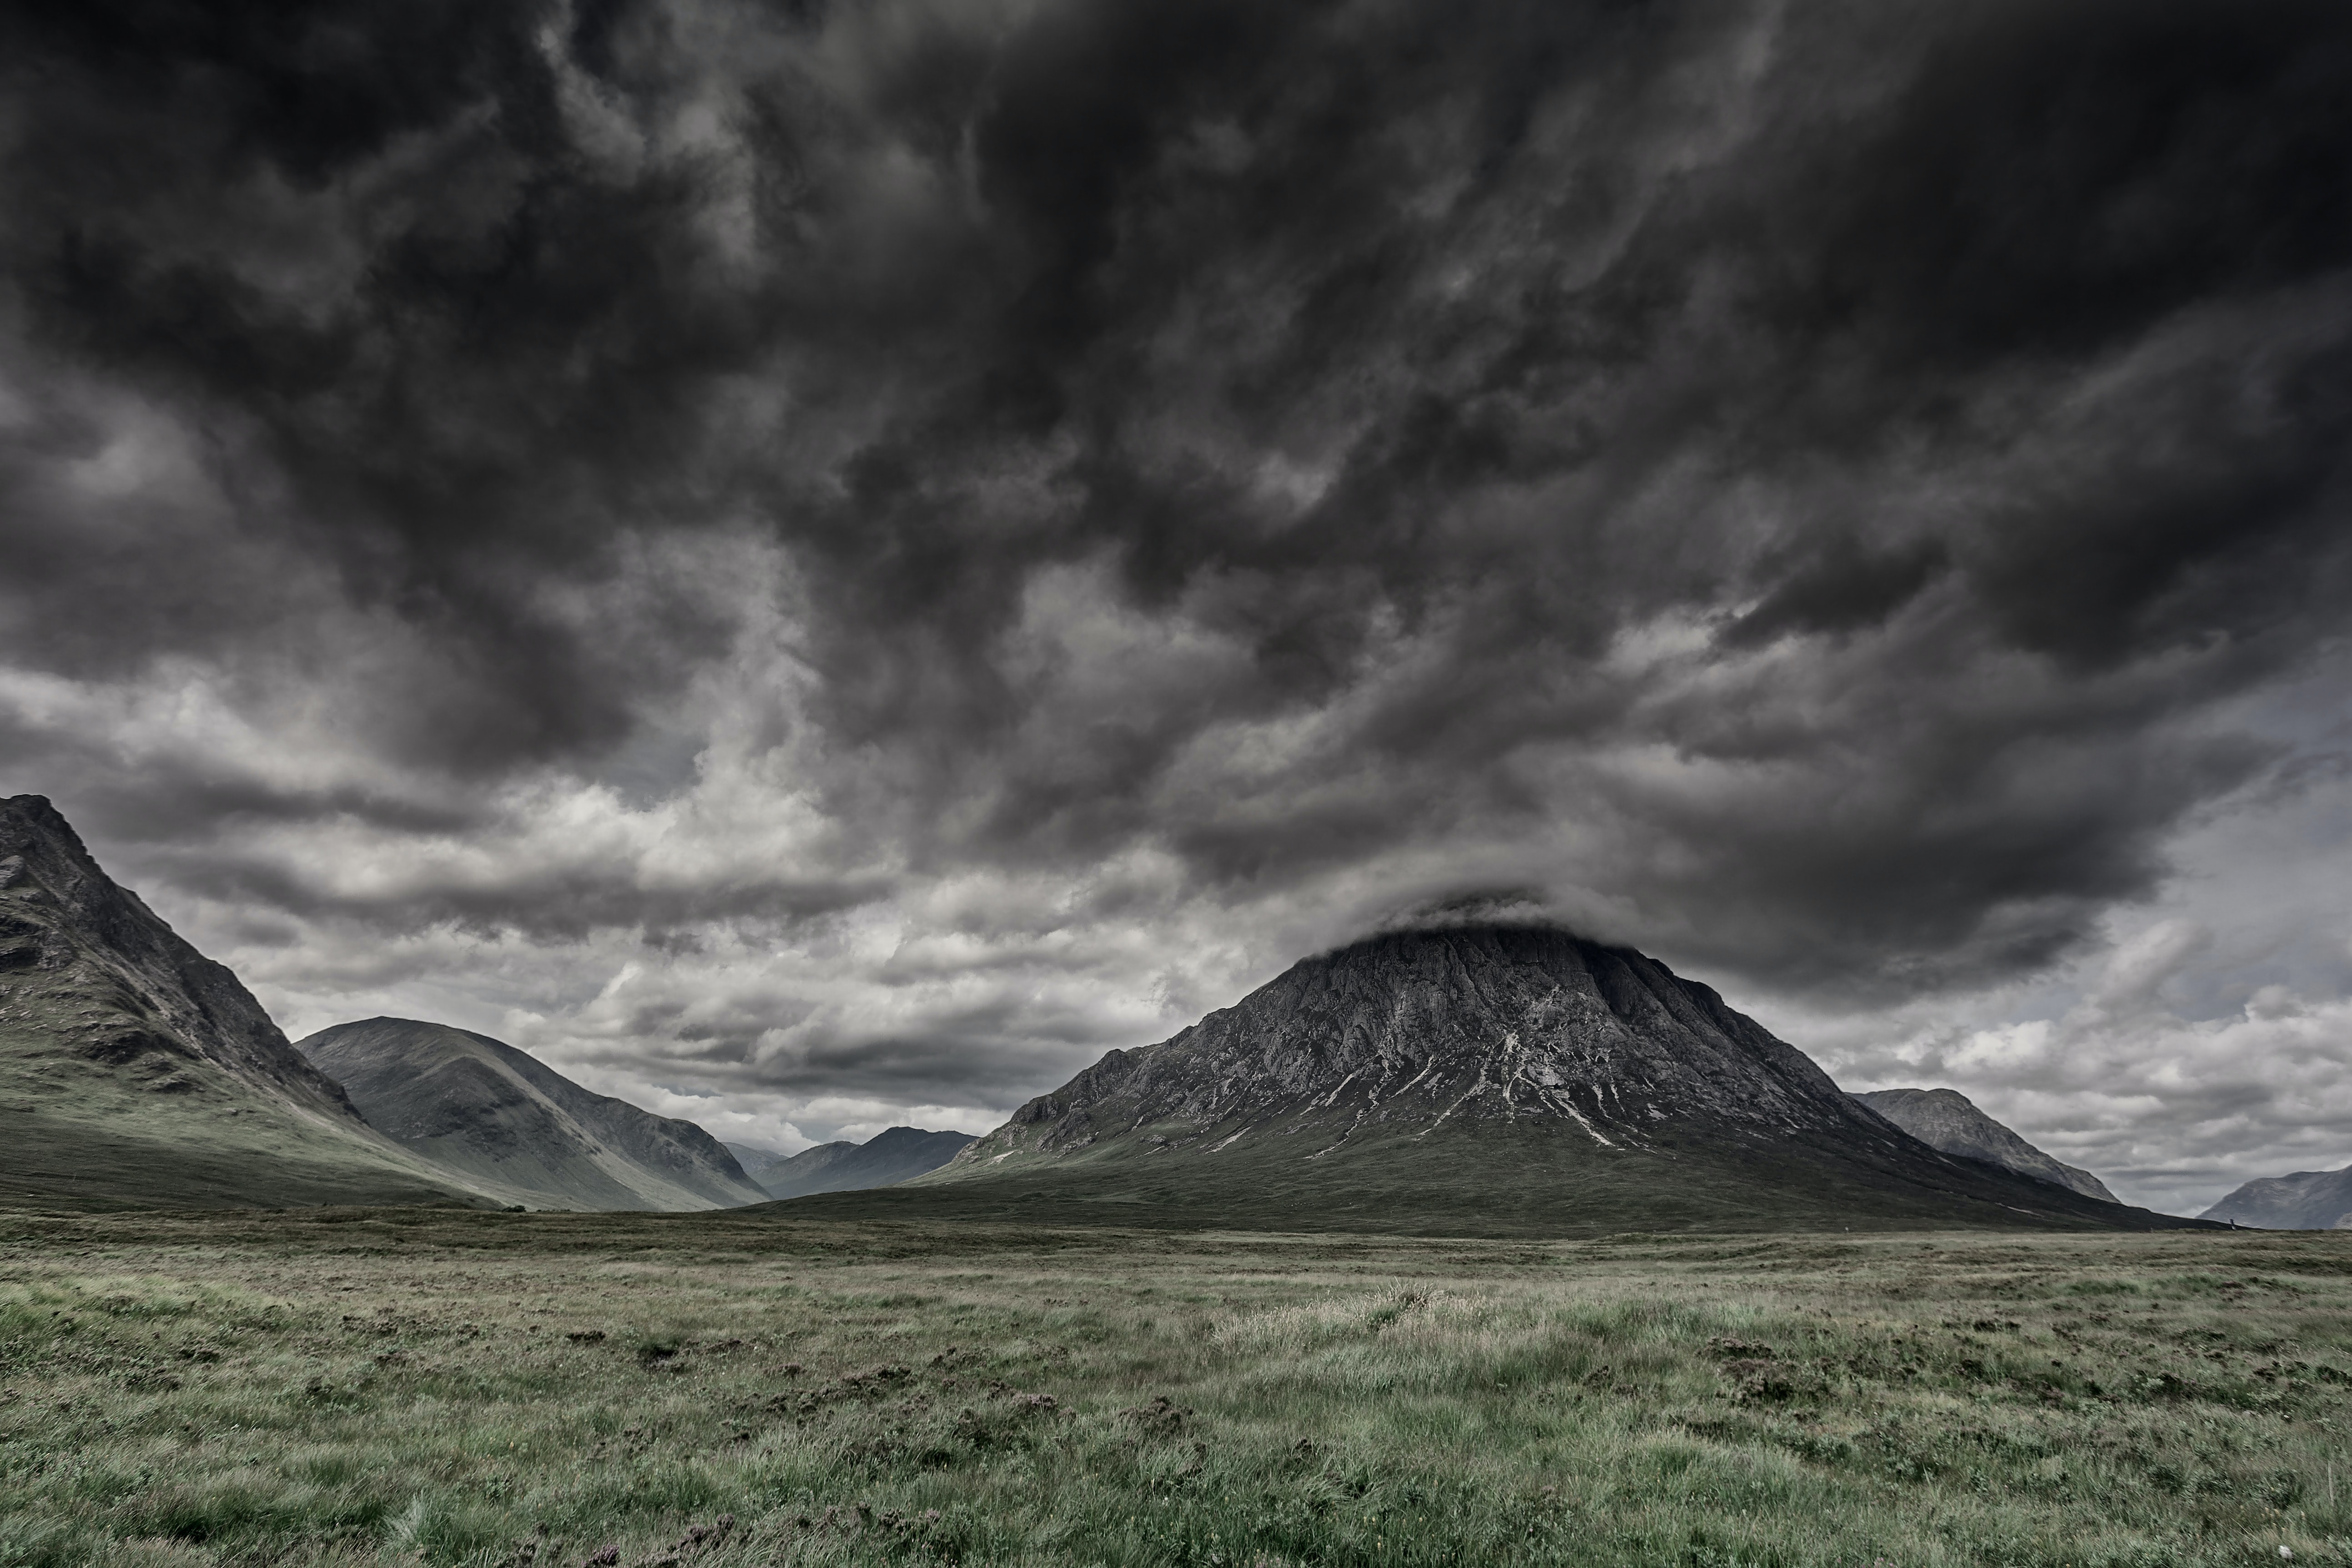 Dark, storm clouds above the valley with small rocky hills at Glencoe